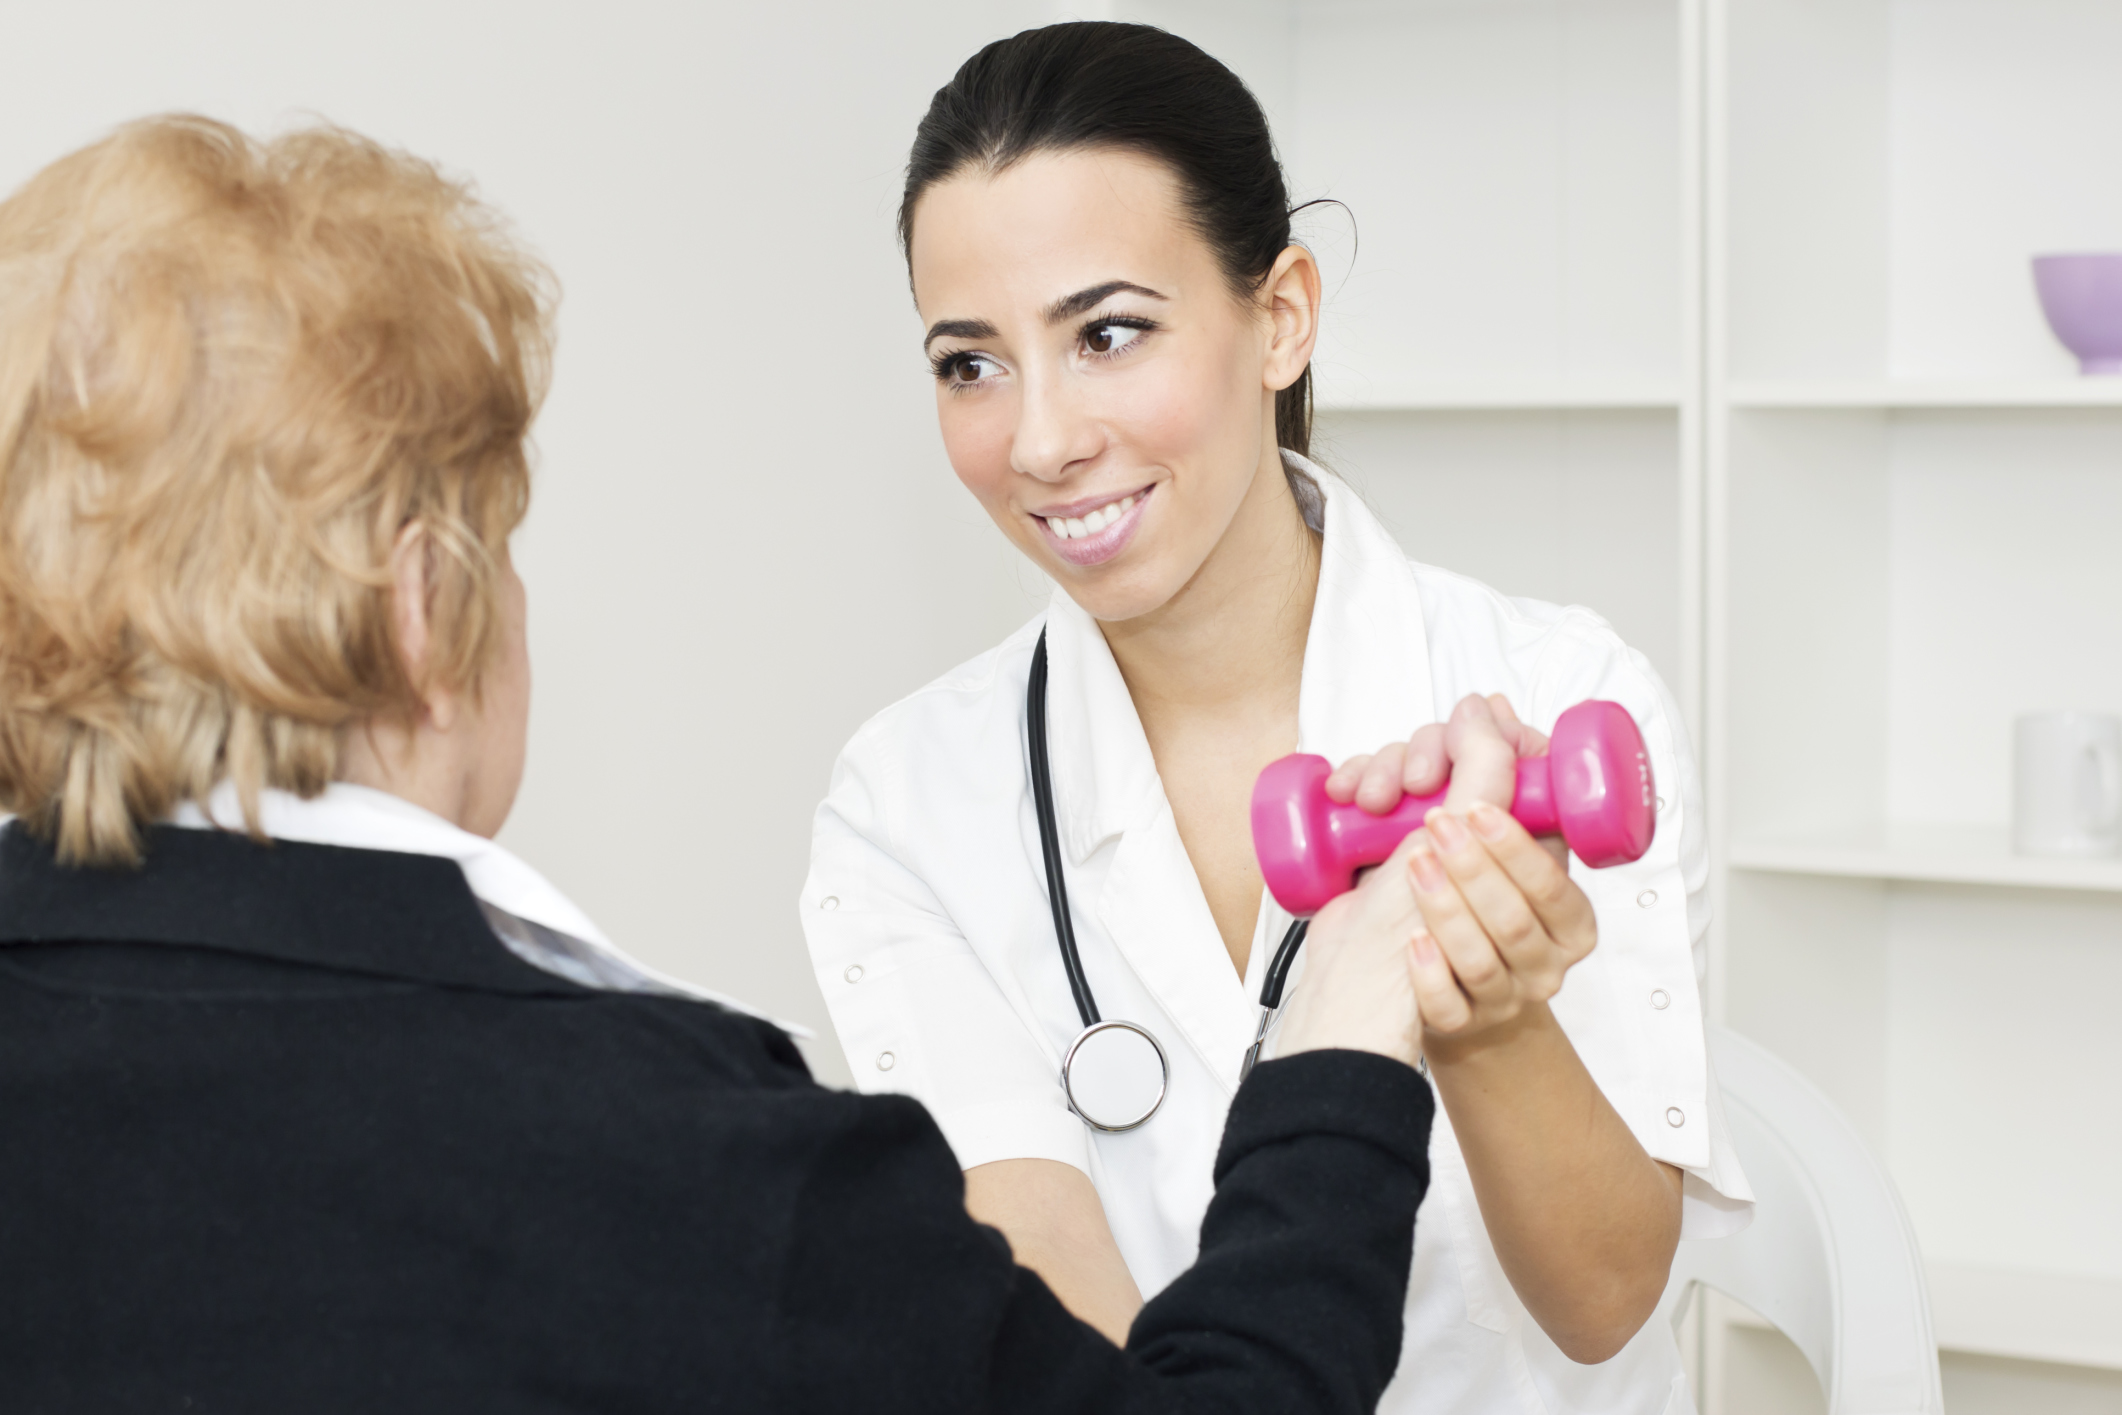 Muscle Relearning in Stroke Rehab With Electrical Stimulation